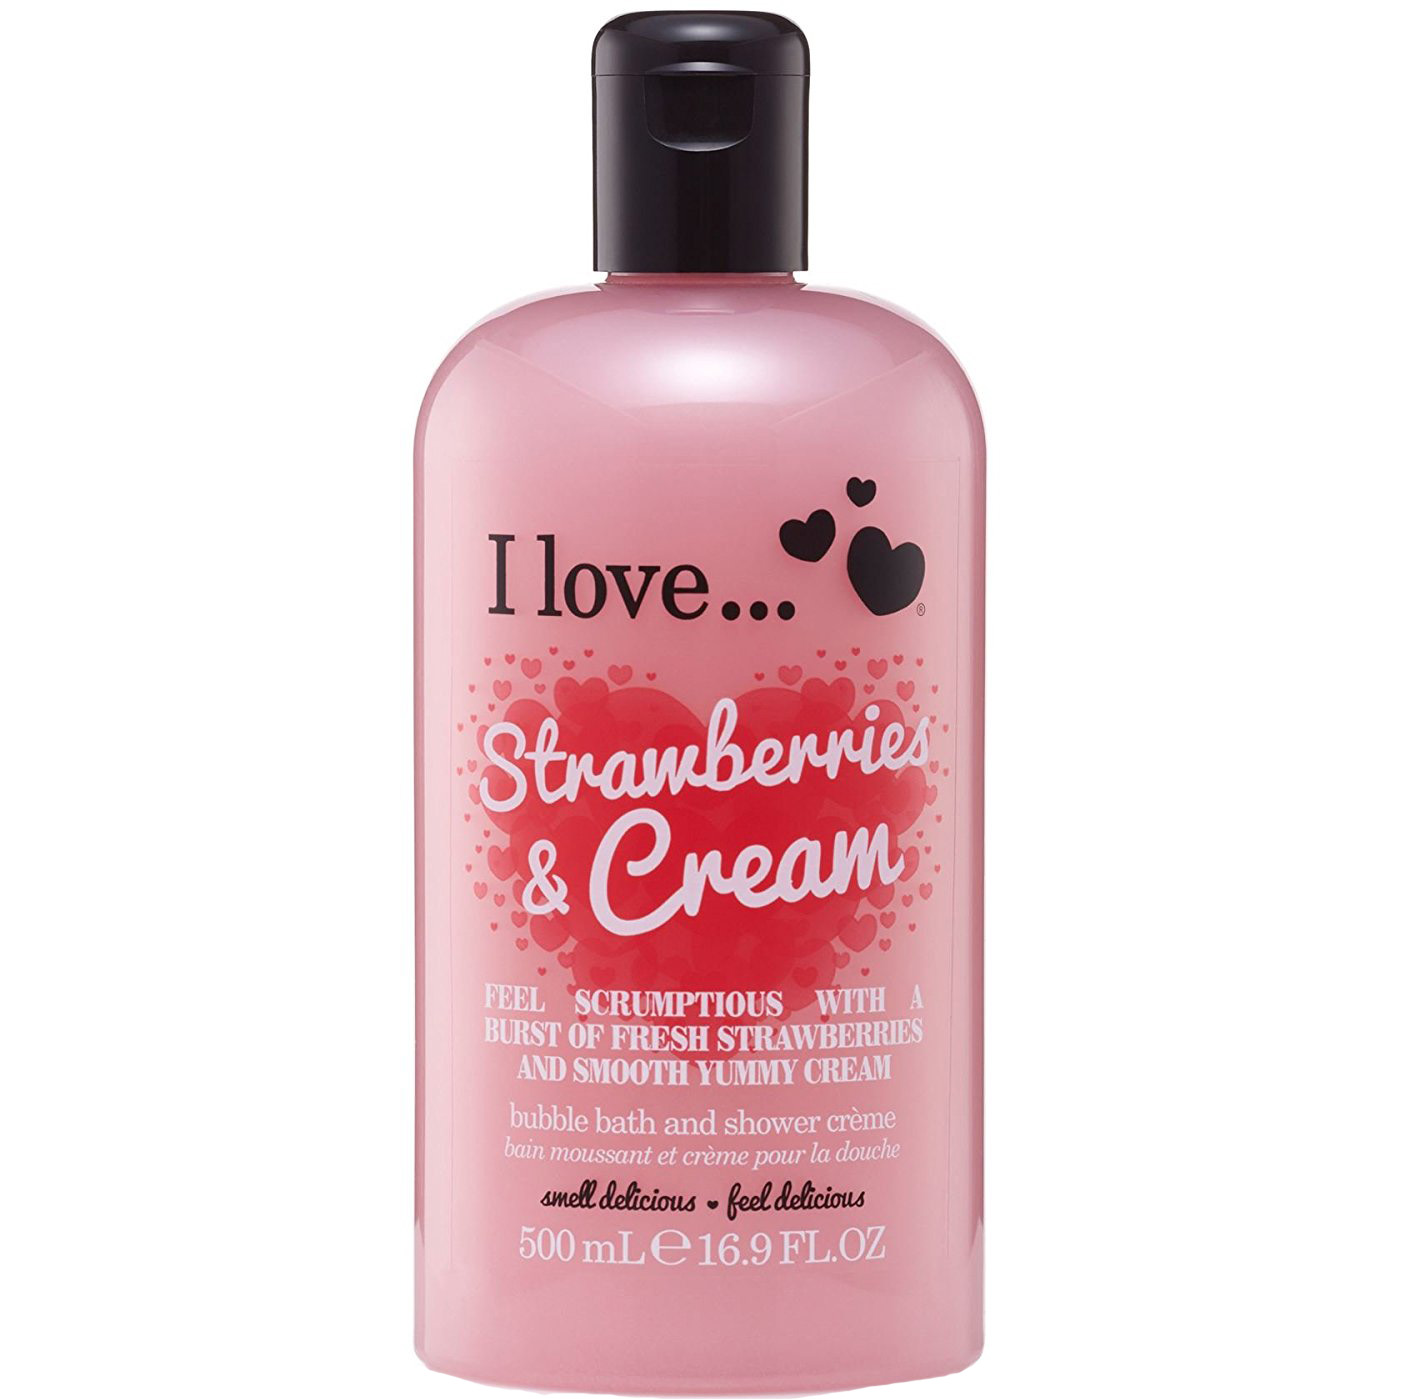 I love… Bath & Shower Creme Ενυδατικό Αφρόλουτρο 500ml – Strawberries & Cream